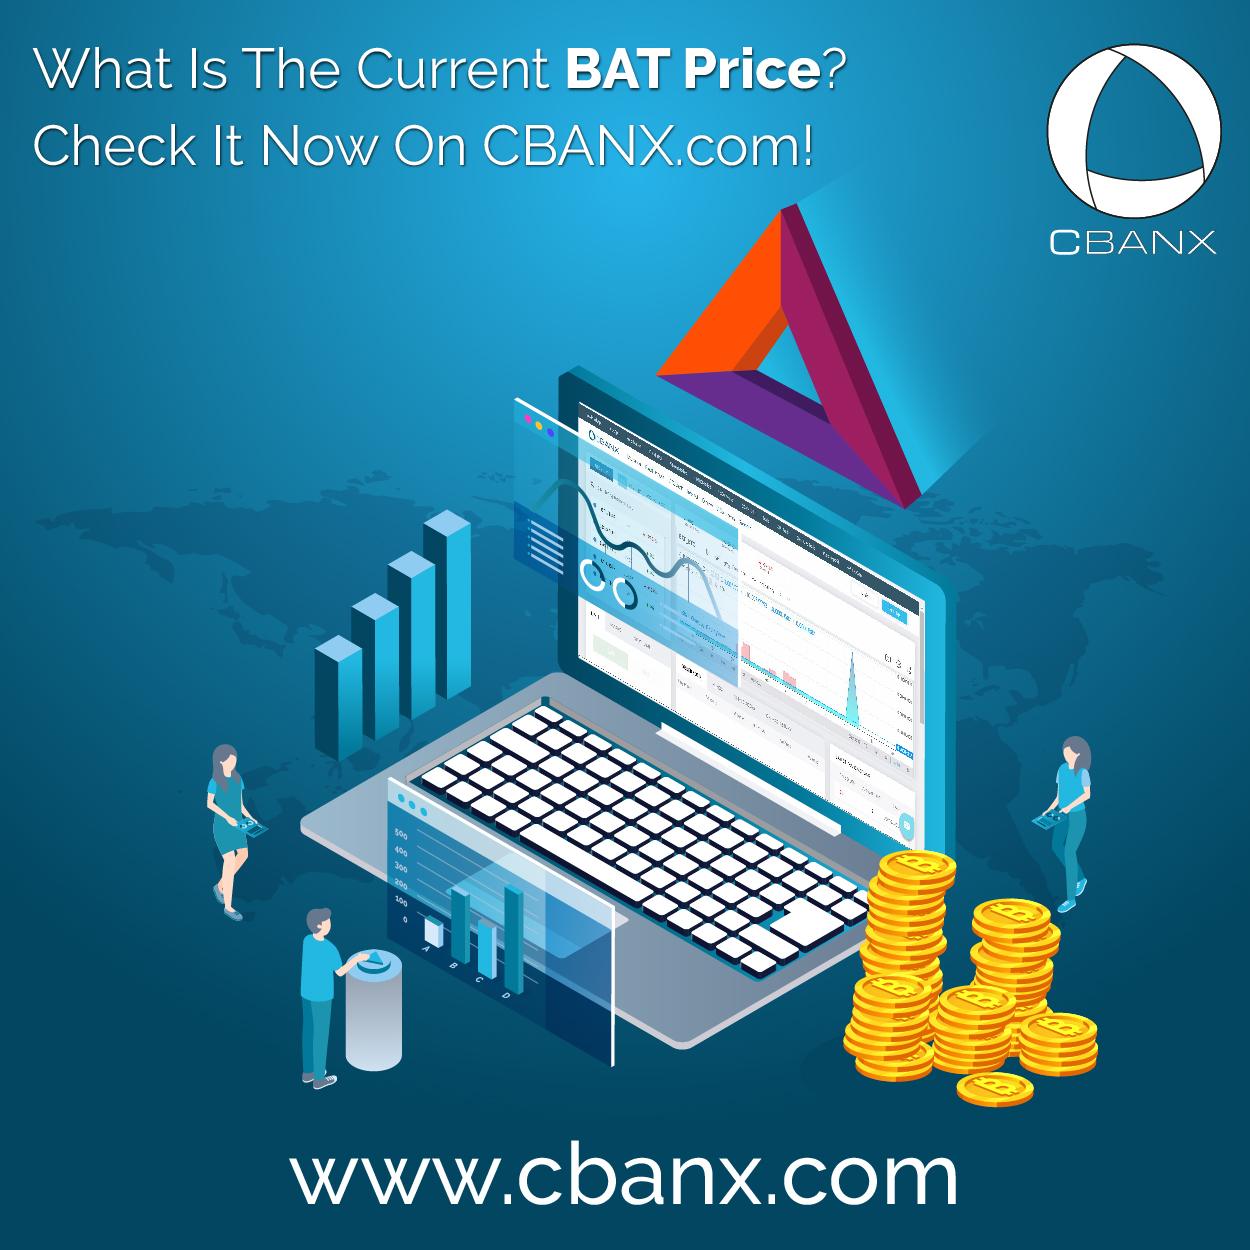 What Is The Current BAT Price? Check It Now On CBANX.com!